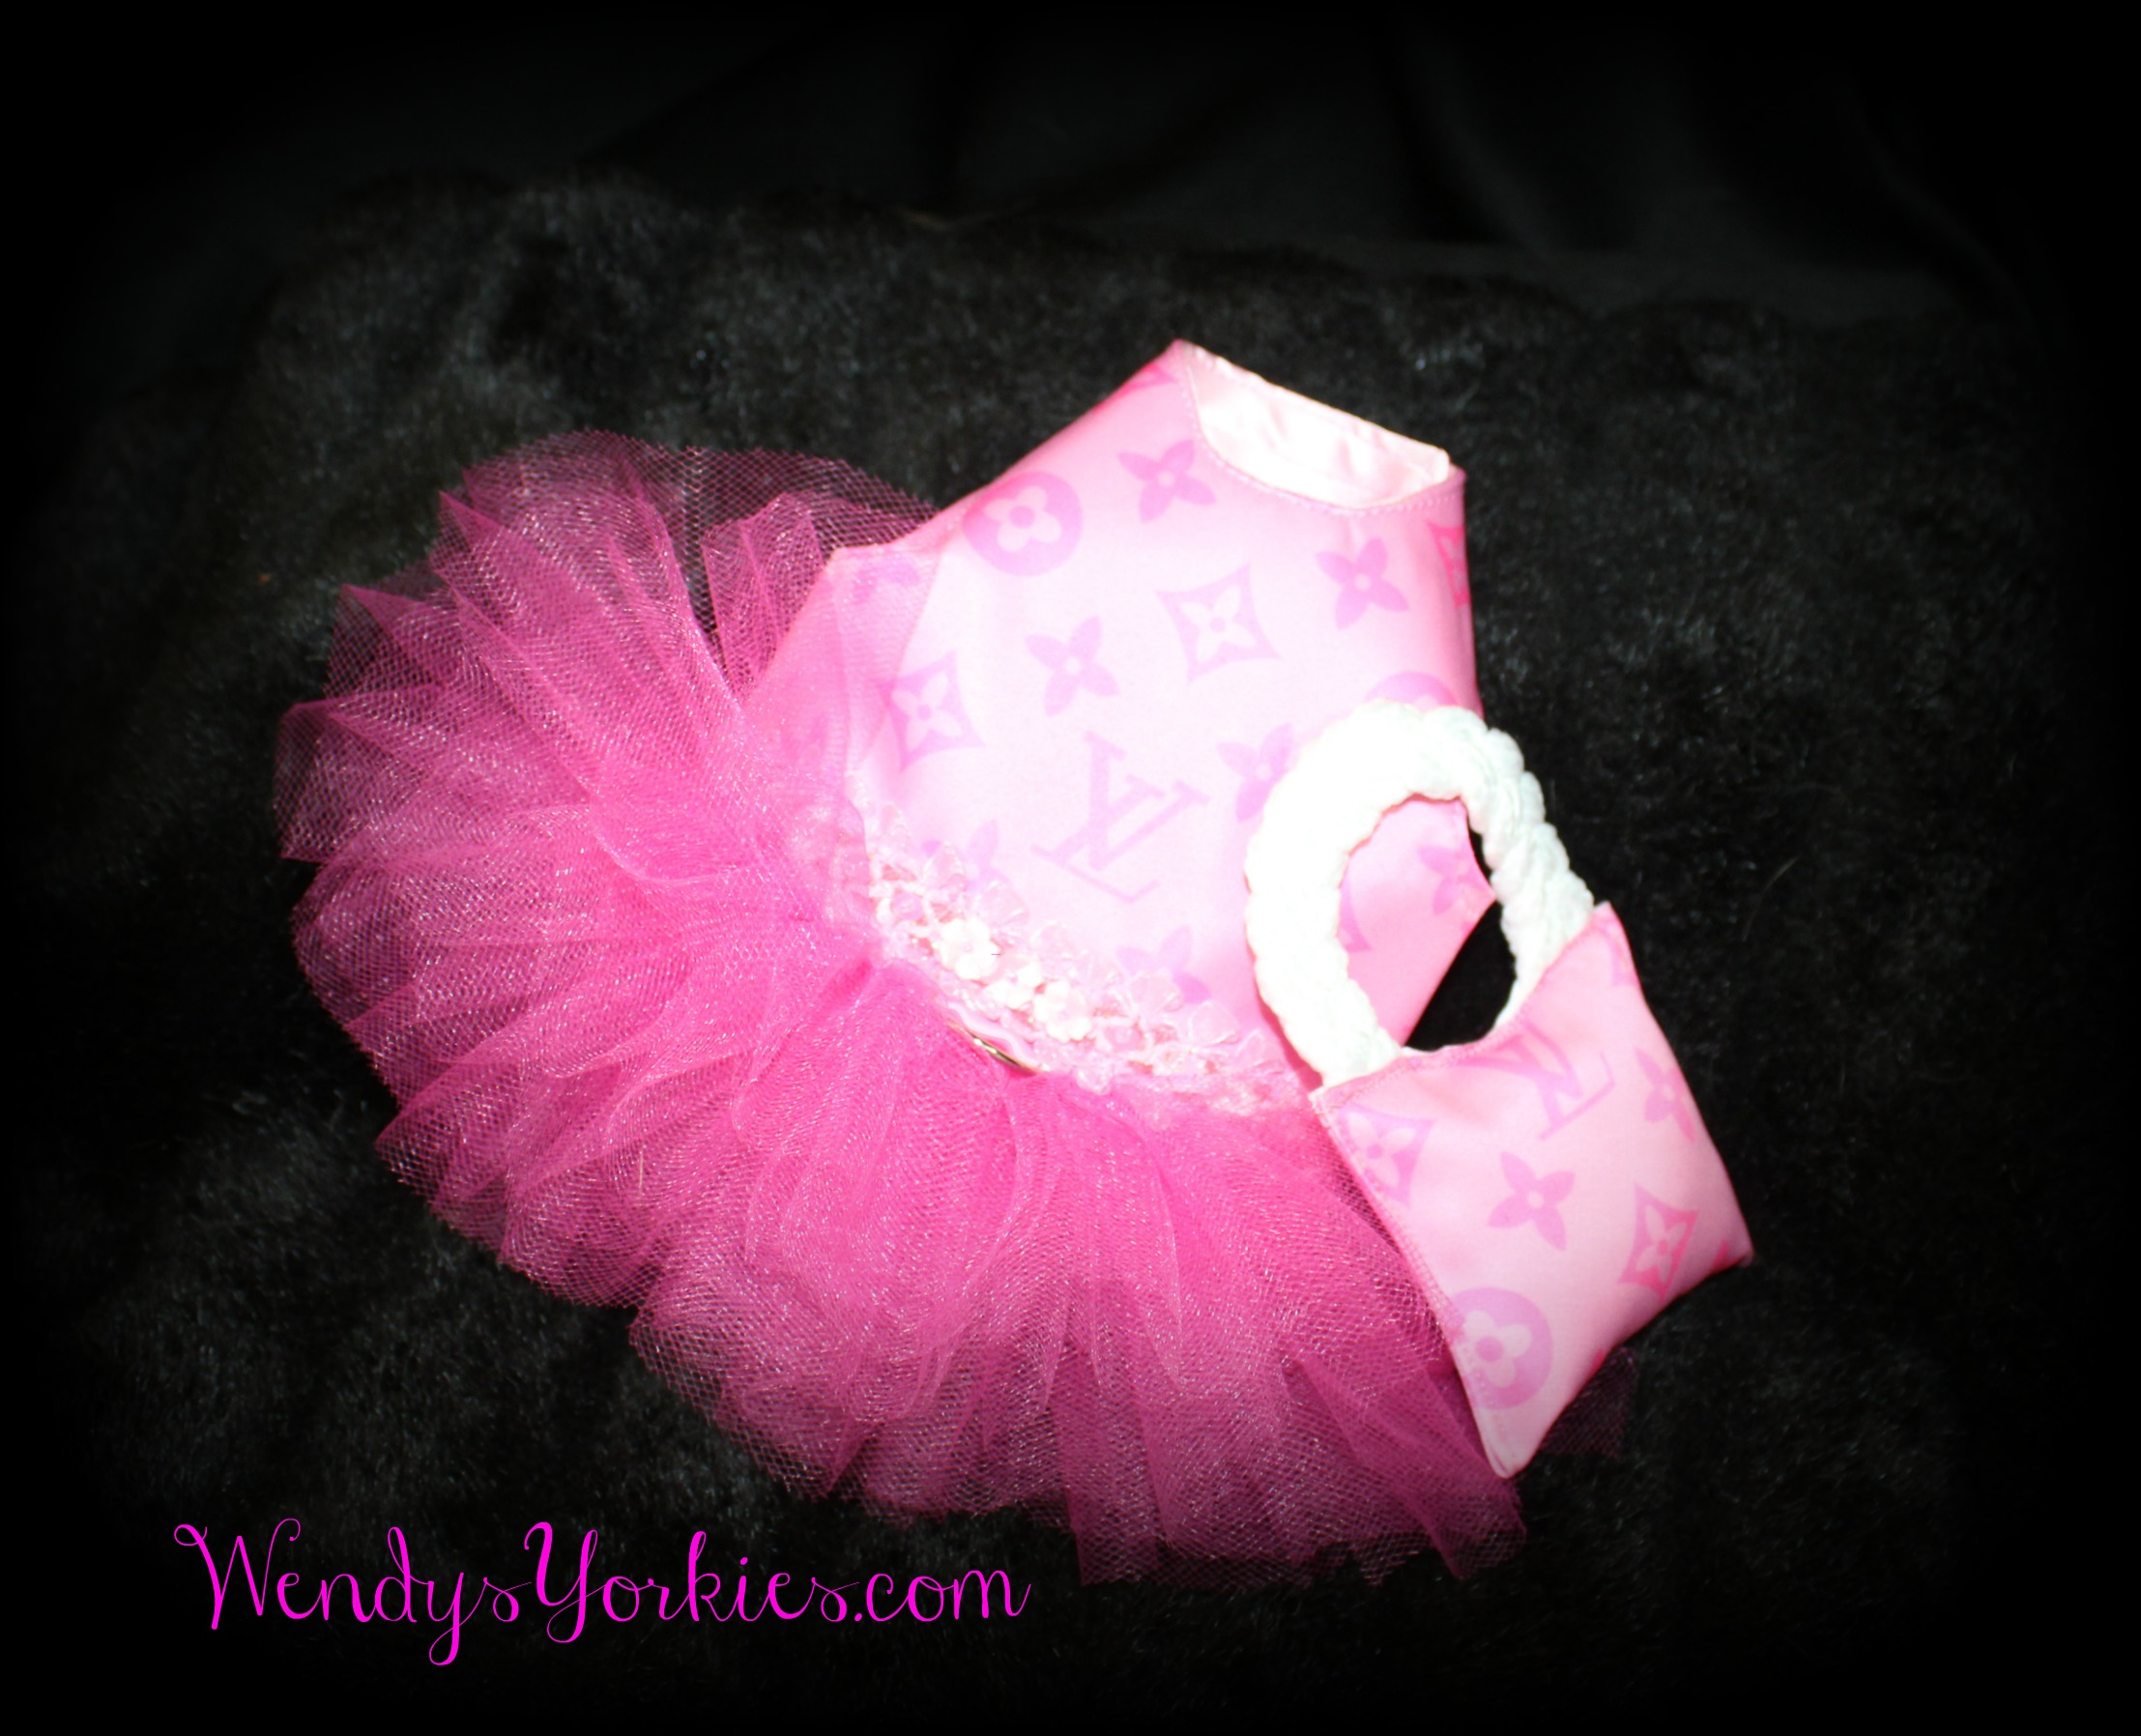 Pink LV DOG tutu dress, WendysYorkies.com